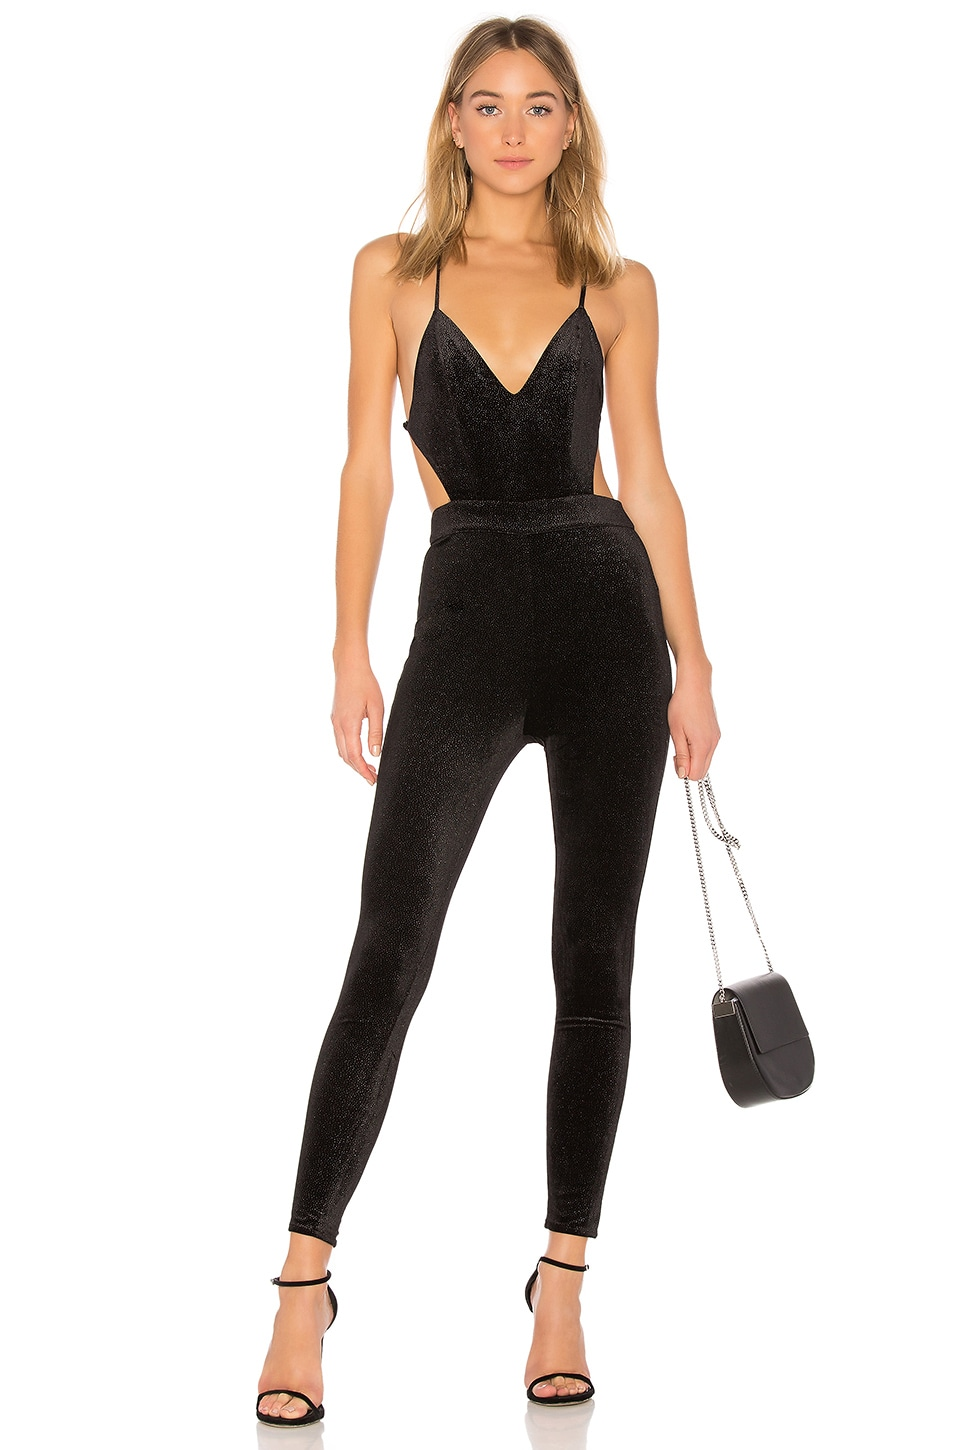 X REVOLVE Let's Be Real Jumpsuit by NBD